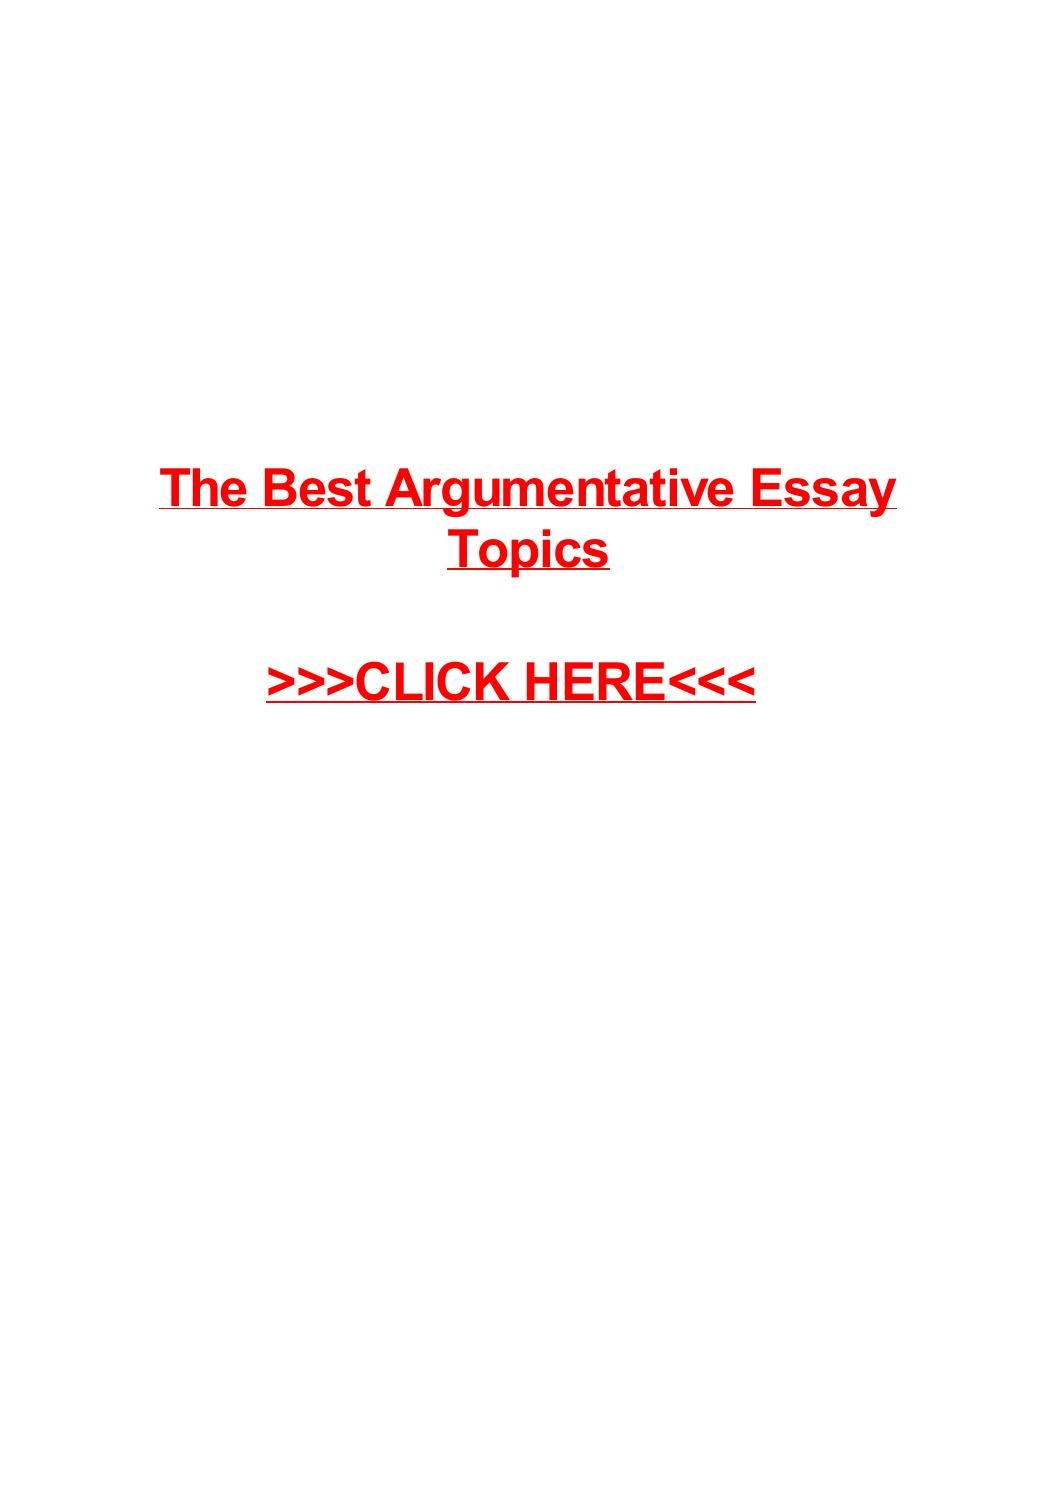 argumentative essay on prop 8 Prop 8 essay prop 8 essay argumentative essay lesson plans for middle school flag essay describing yourself in spanish worksheet zebra short essay narrative.